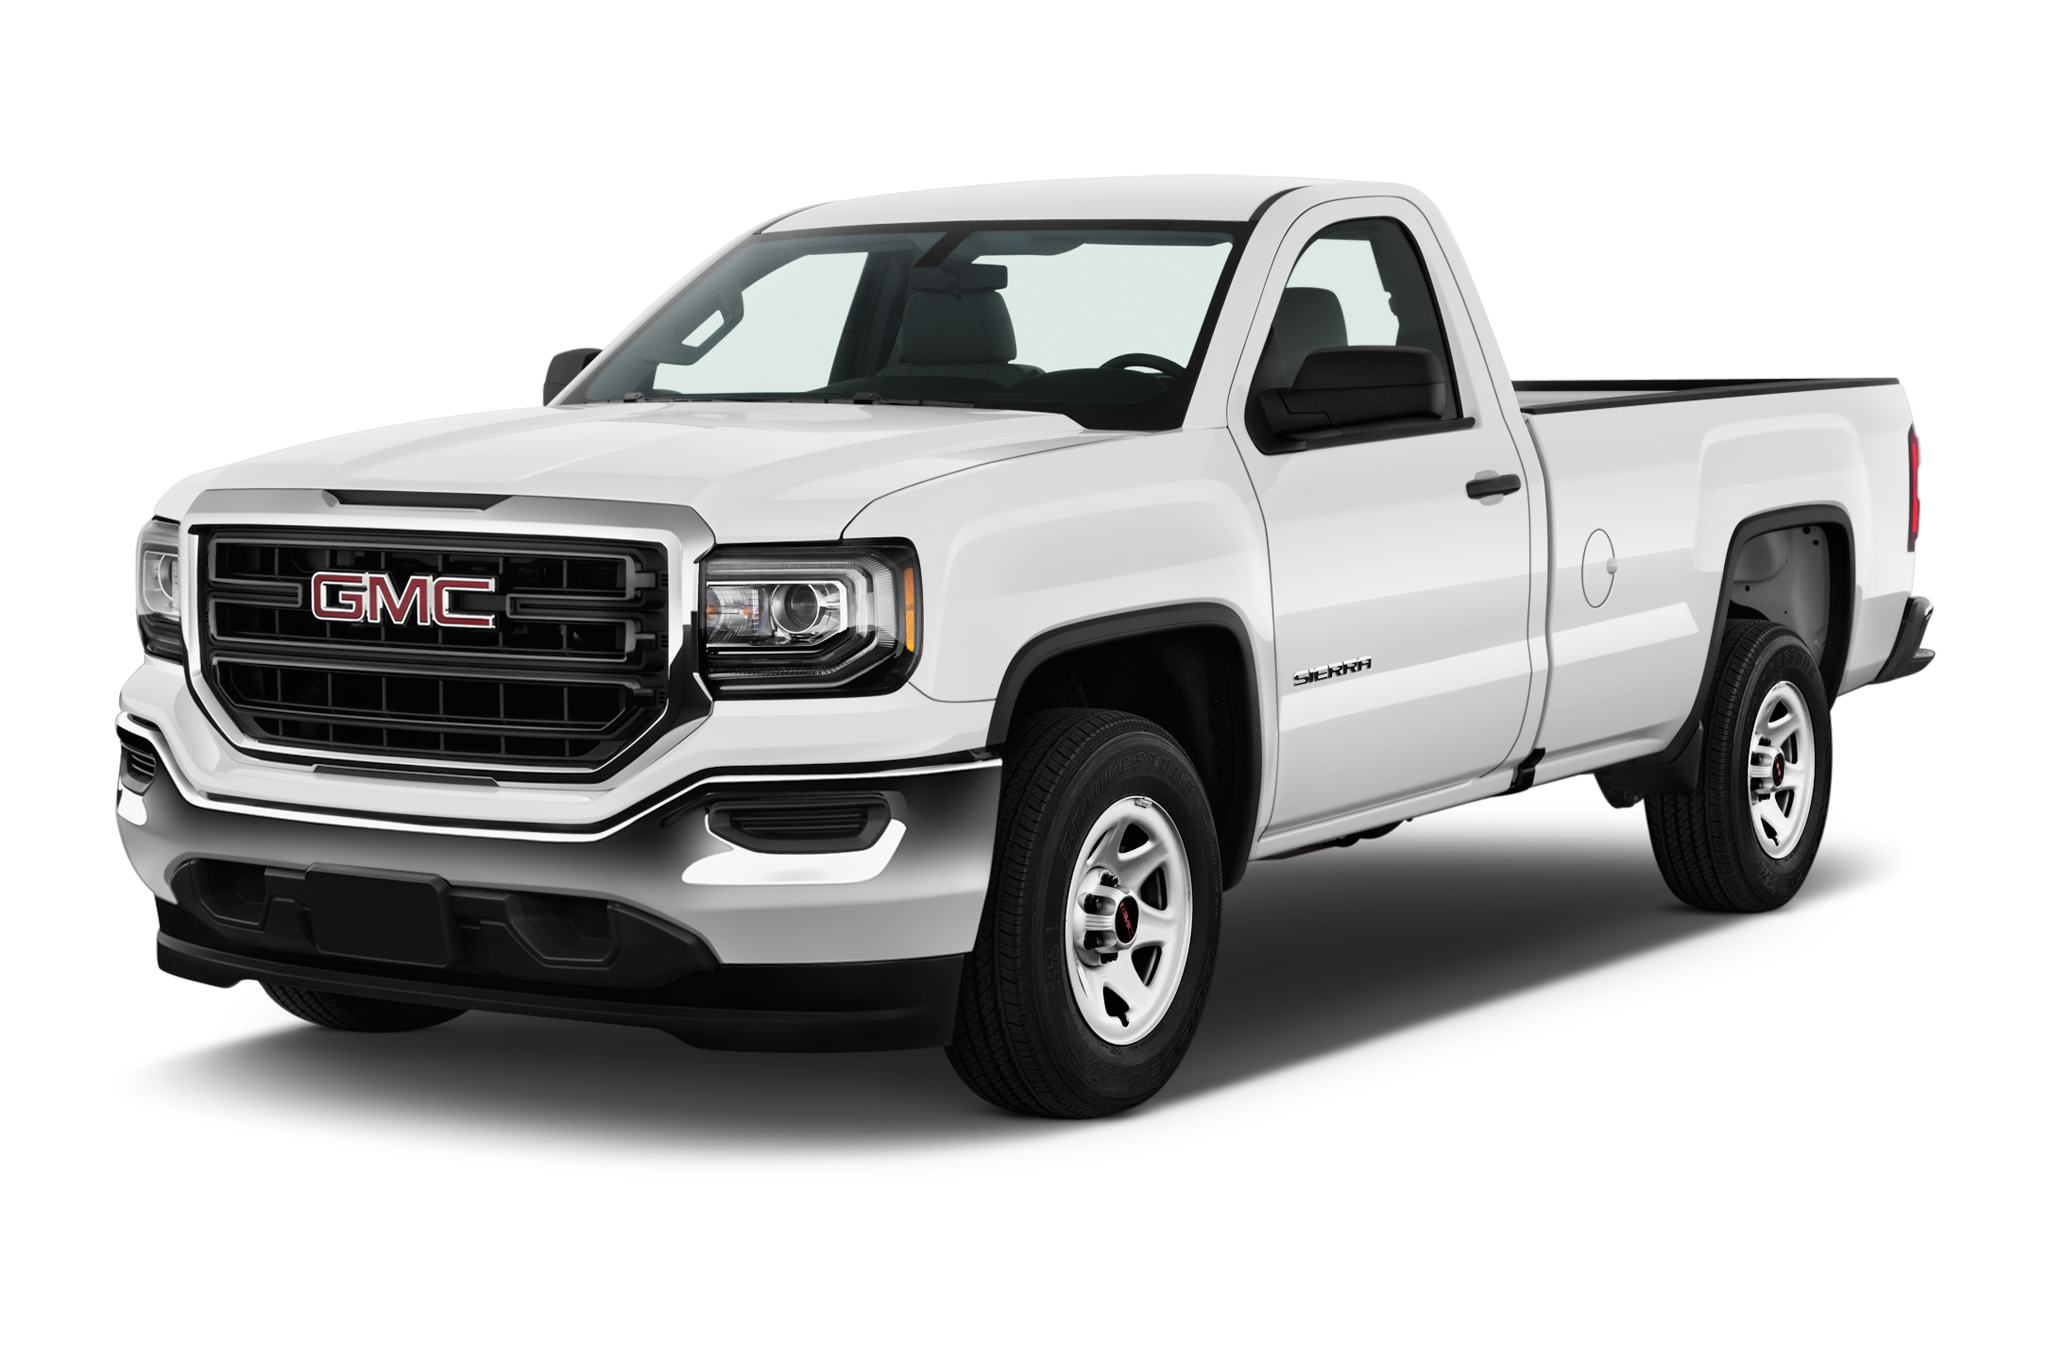 2017 gmc sierra 1500 4wd regular cab long box sle pricing. Black Bedroom Furniture Sets. Home Design Ideas